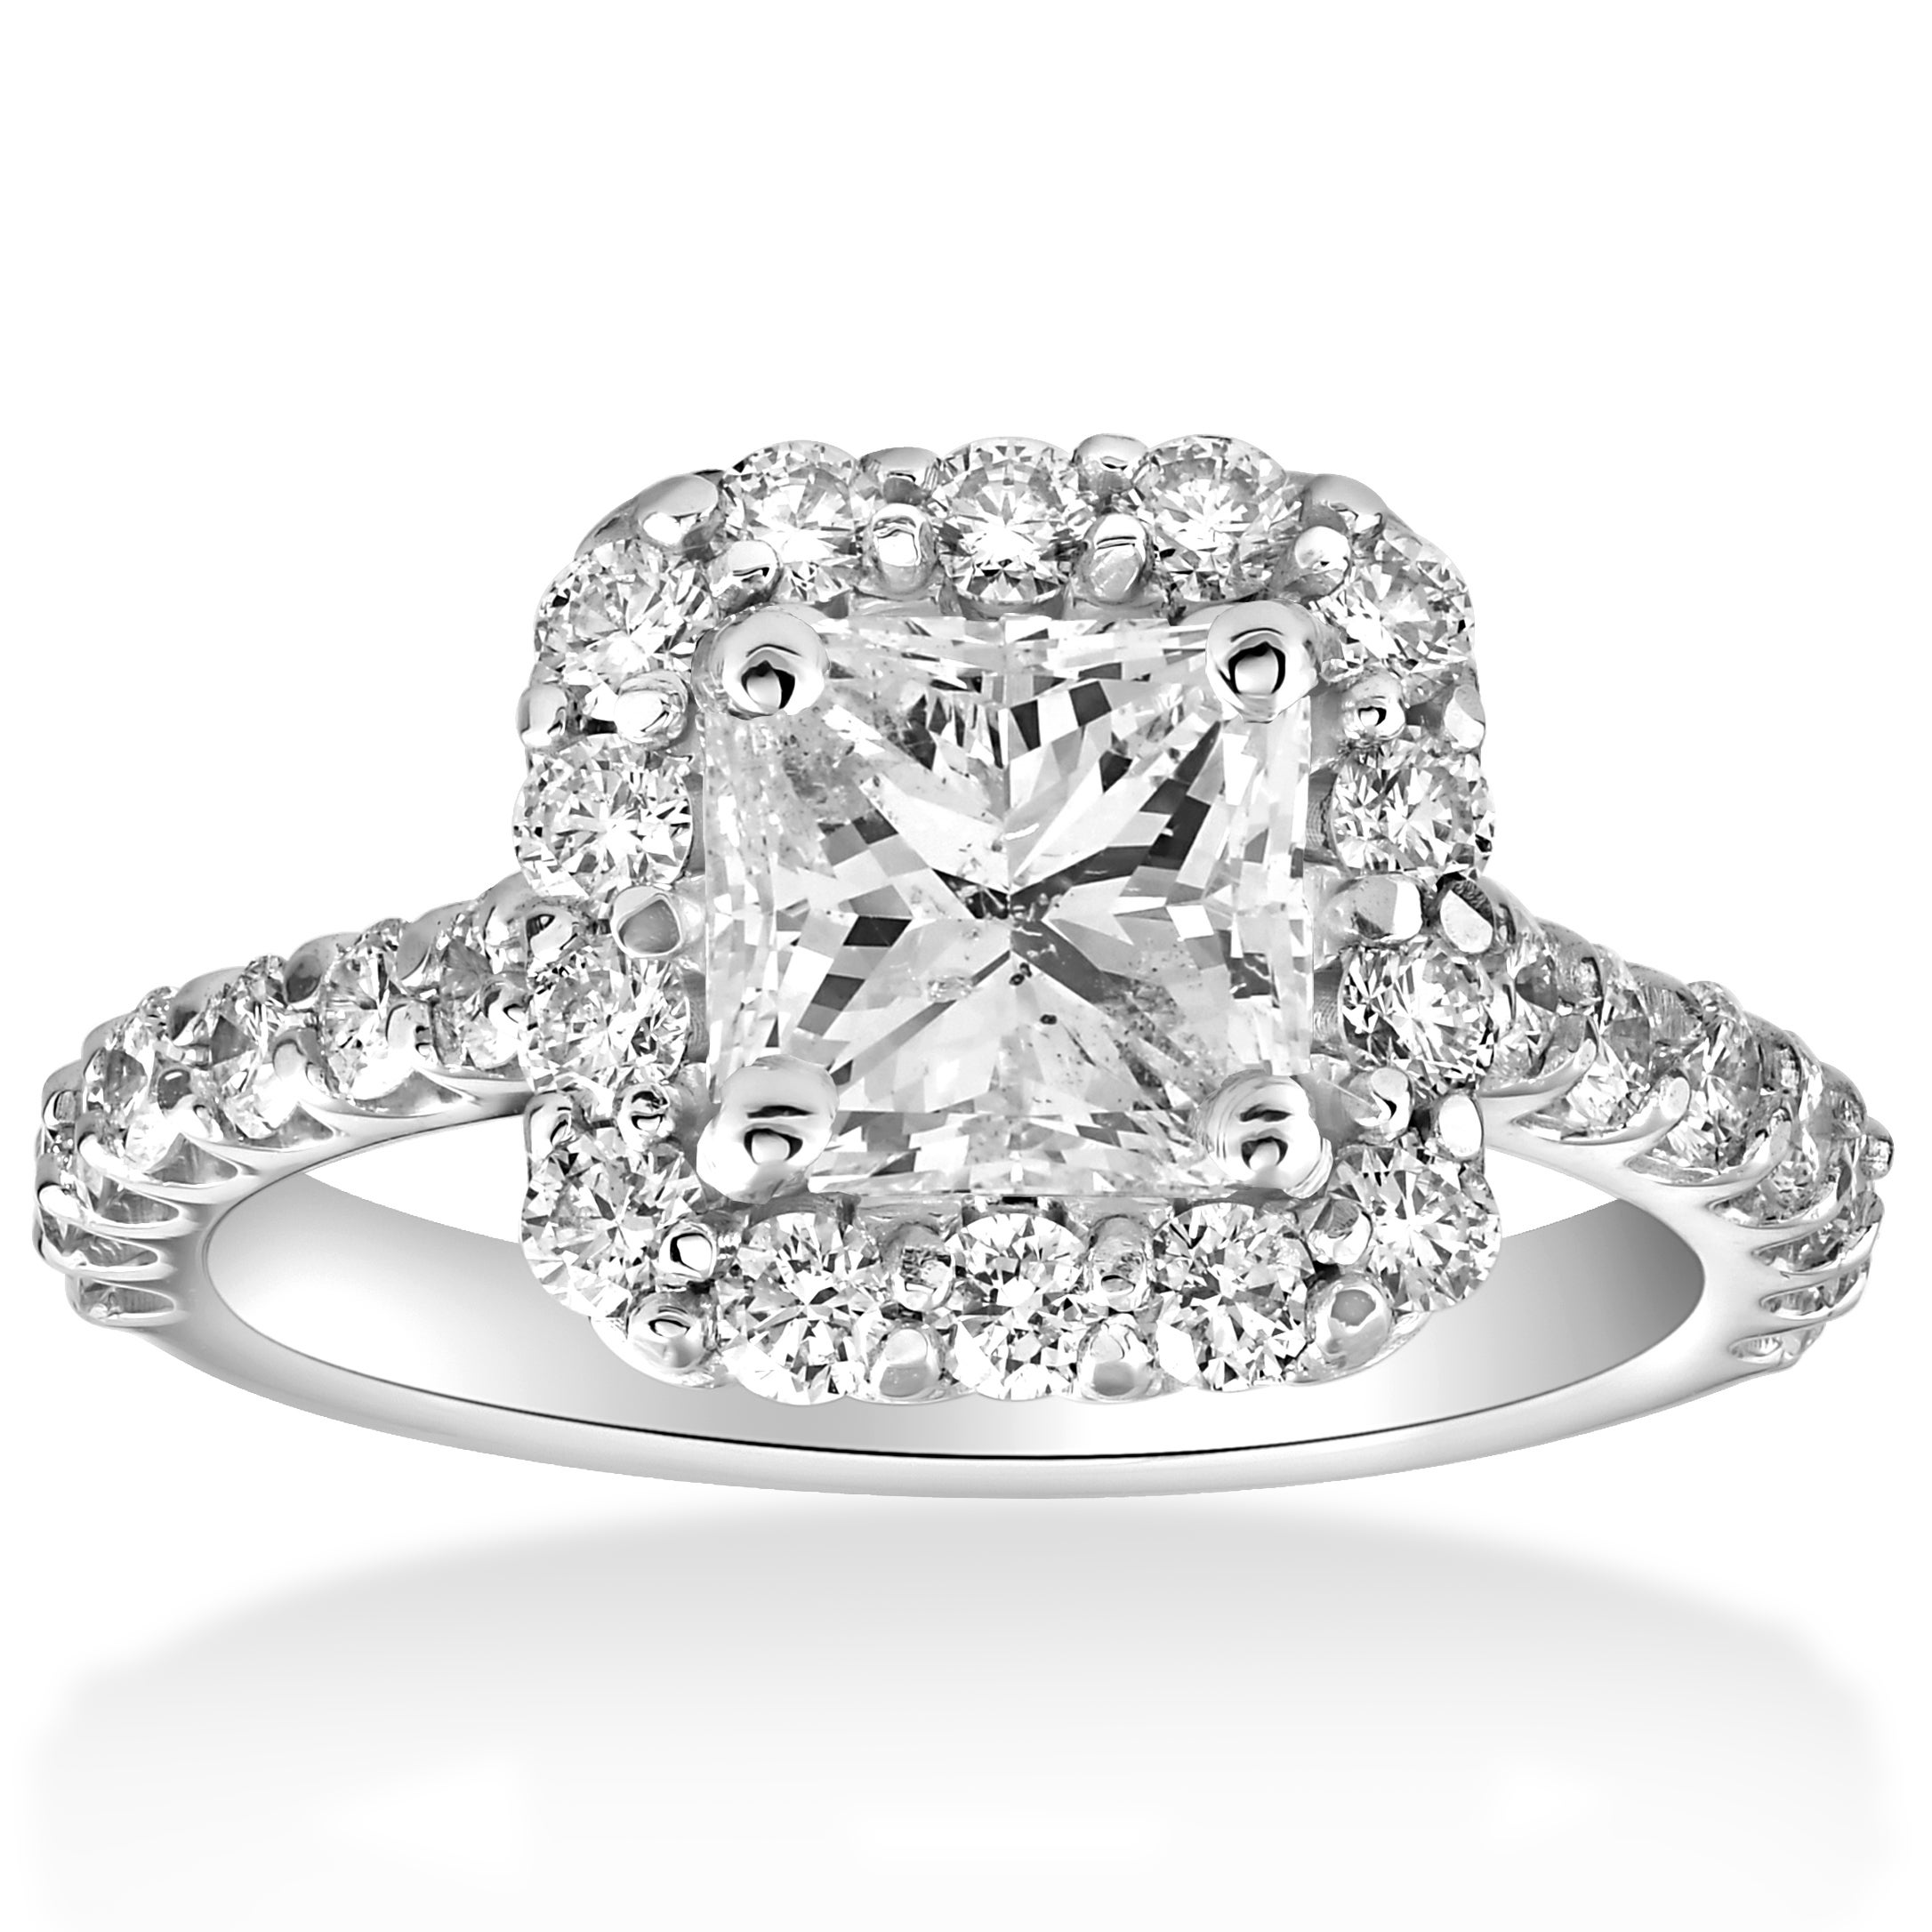 quot pave ring fiorire rings engagement with cut in profile and shank halo diamond uneek white square princess go ri